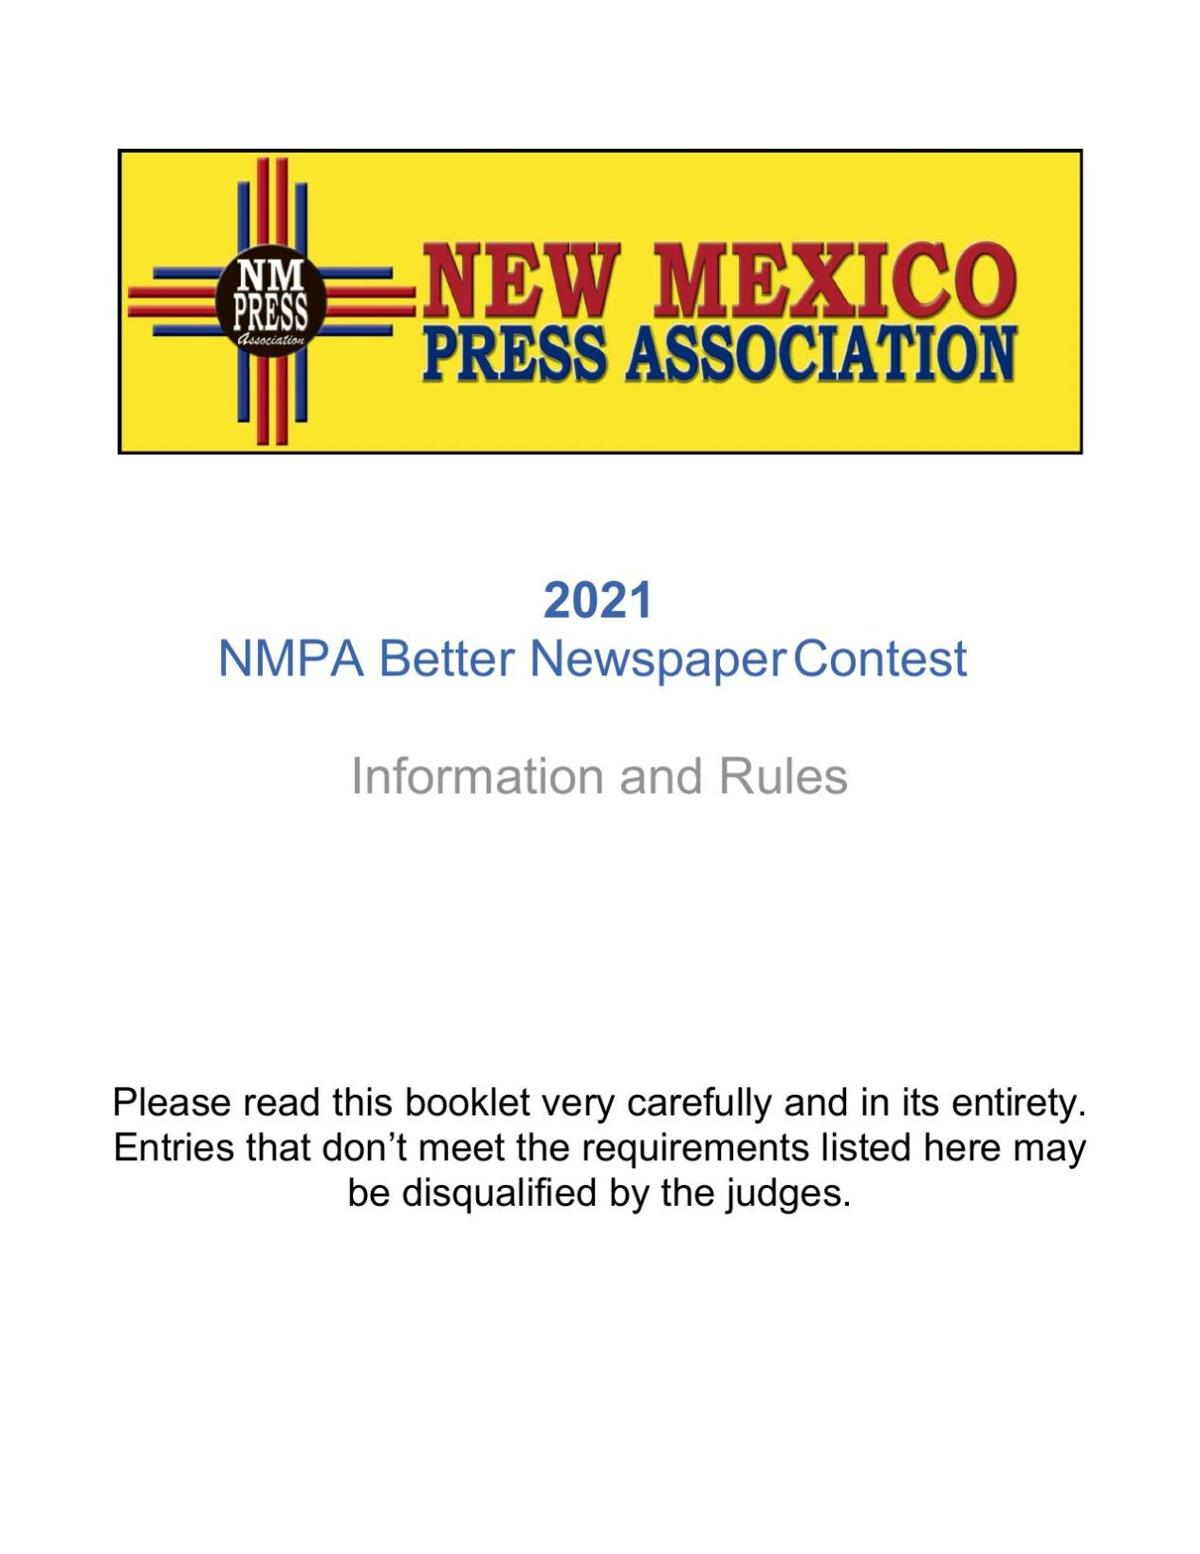 2021 NMPA Contest Information and Rules